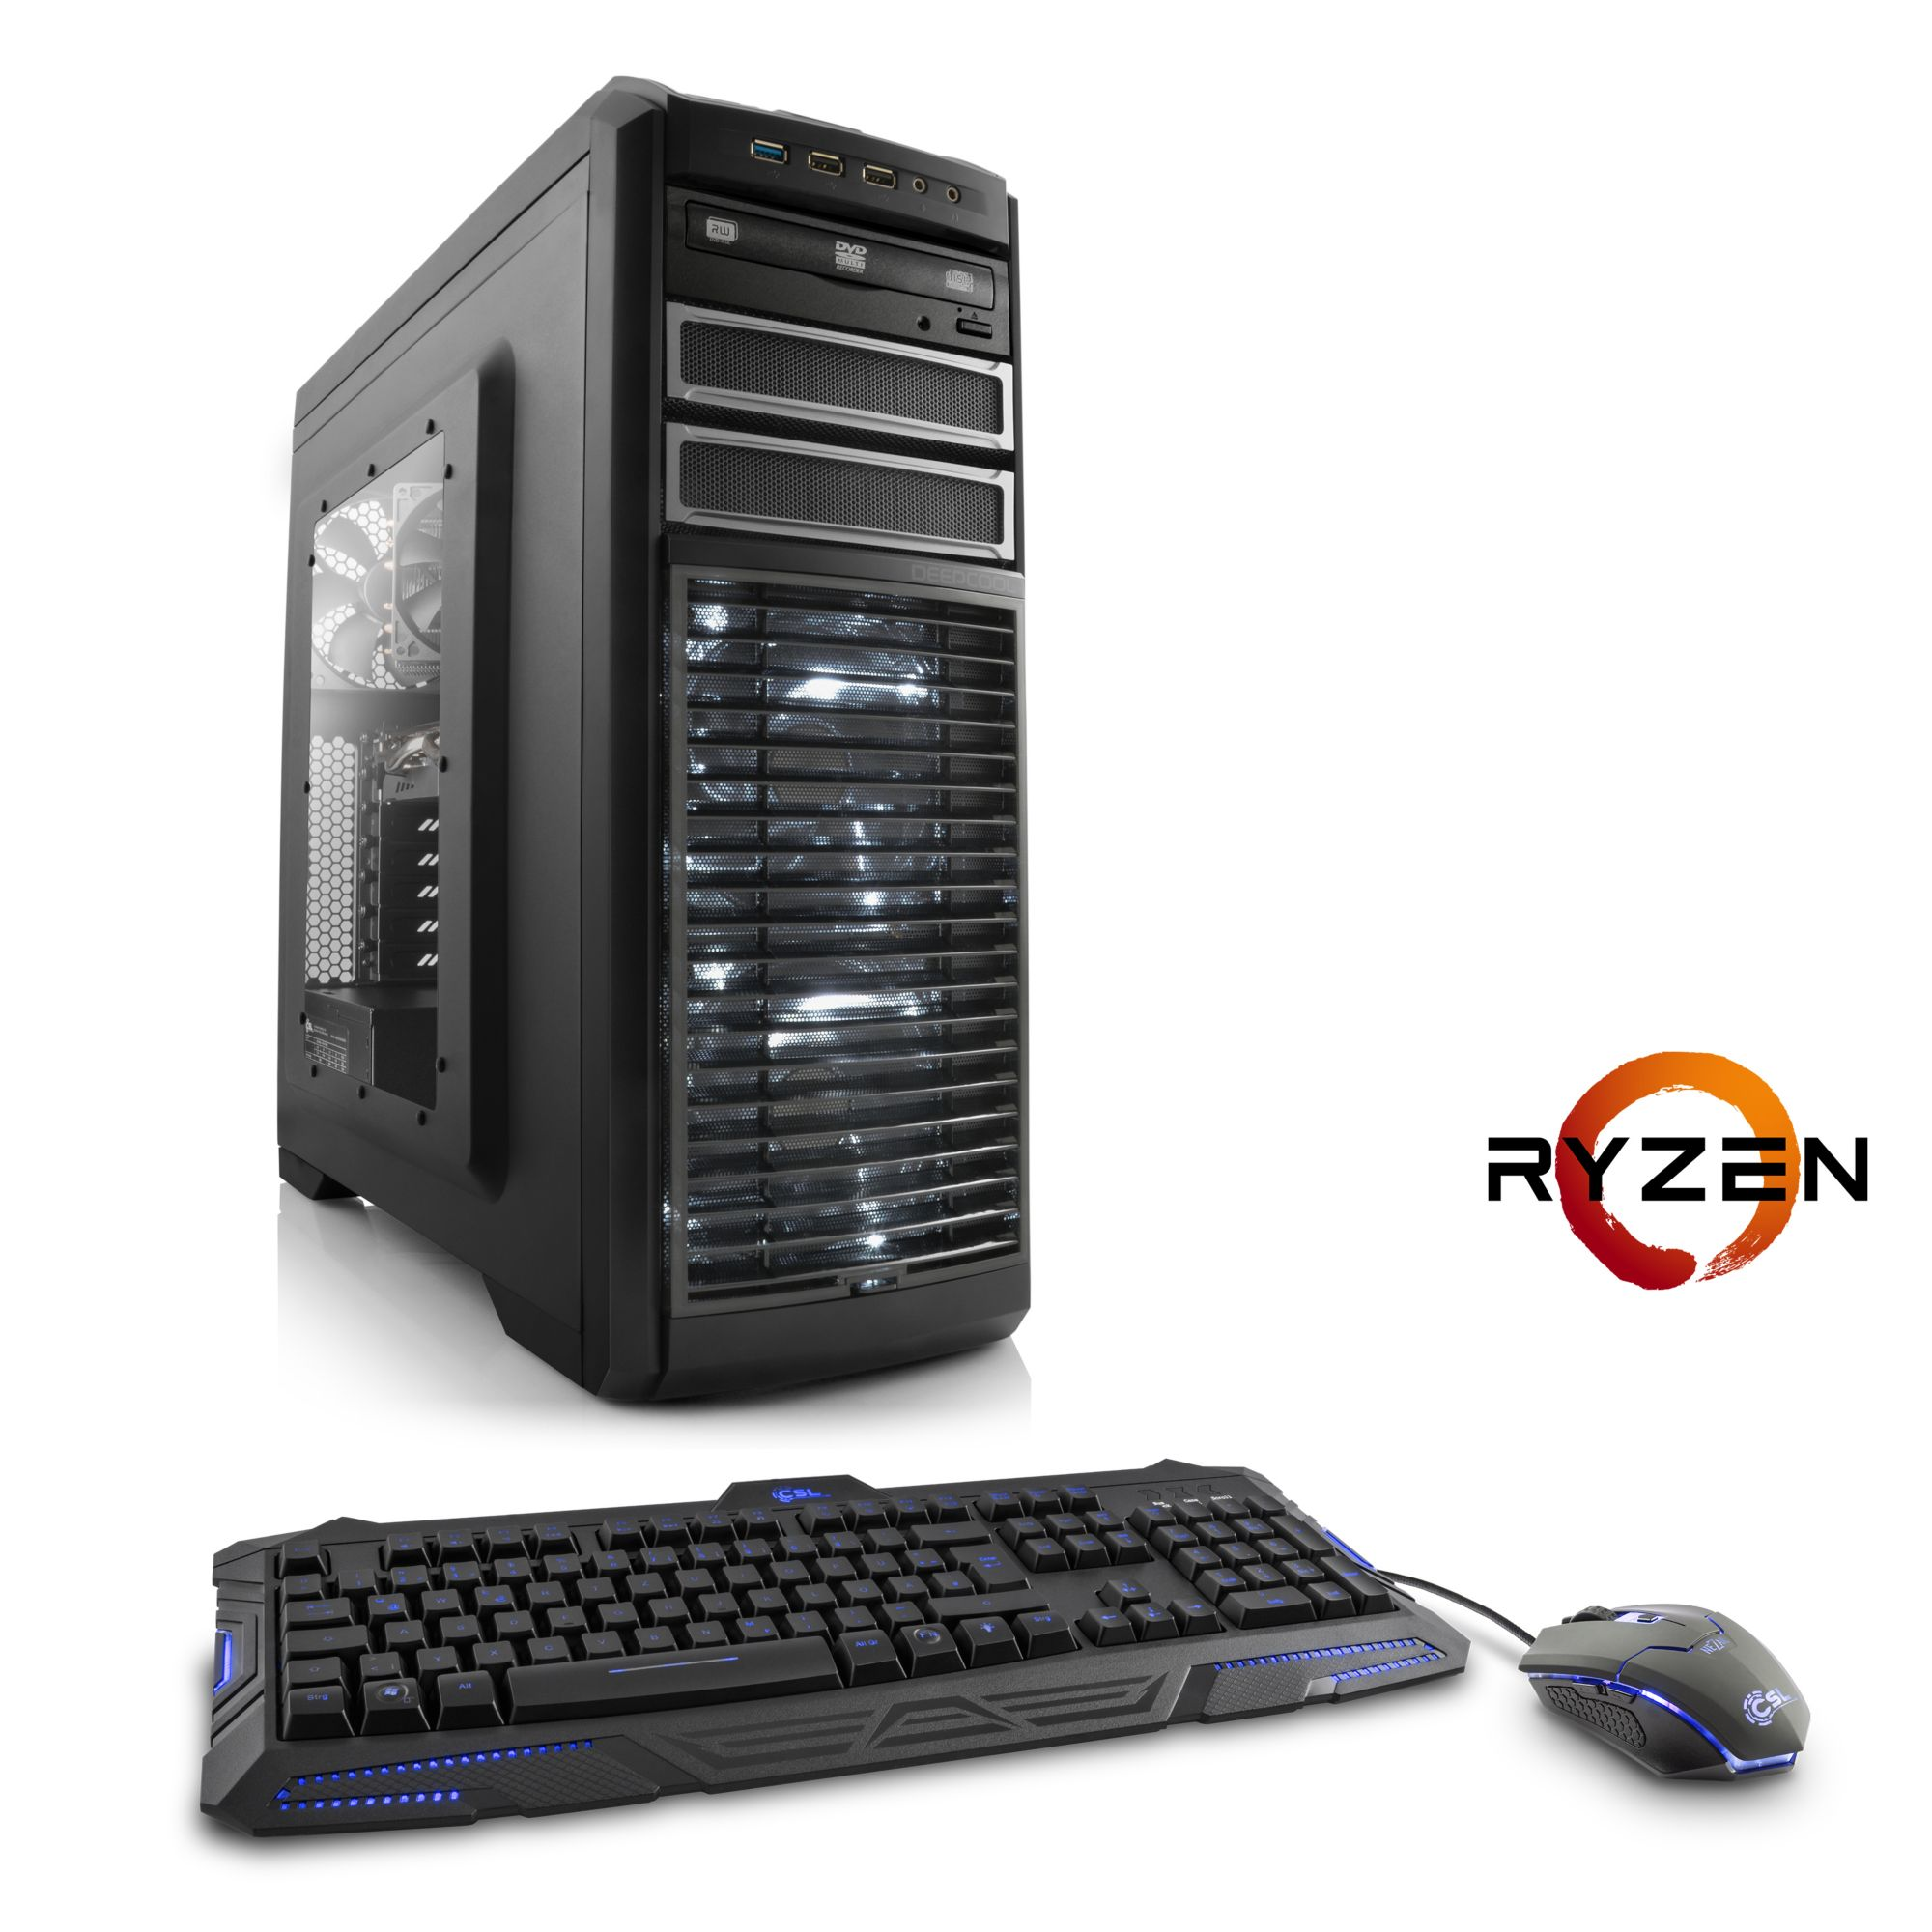 CSL  Extreme Gaming PC | Ryzen 7 1800X | GTX 1070 | 16 GB DDR4 | SSD »Sprint T8693 Windows 10 Home«